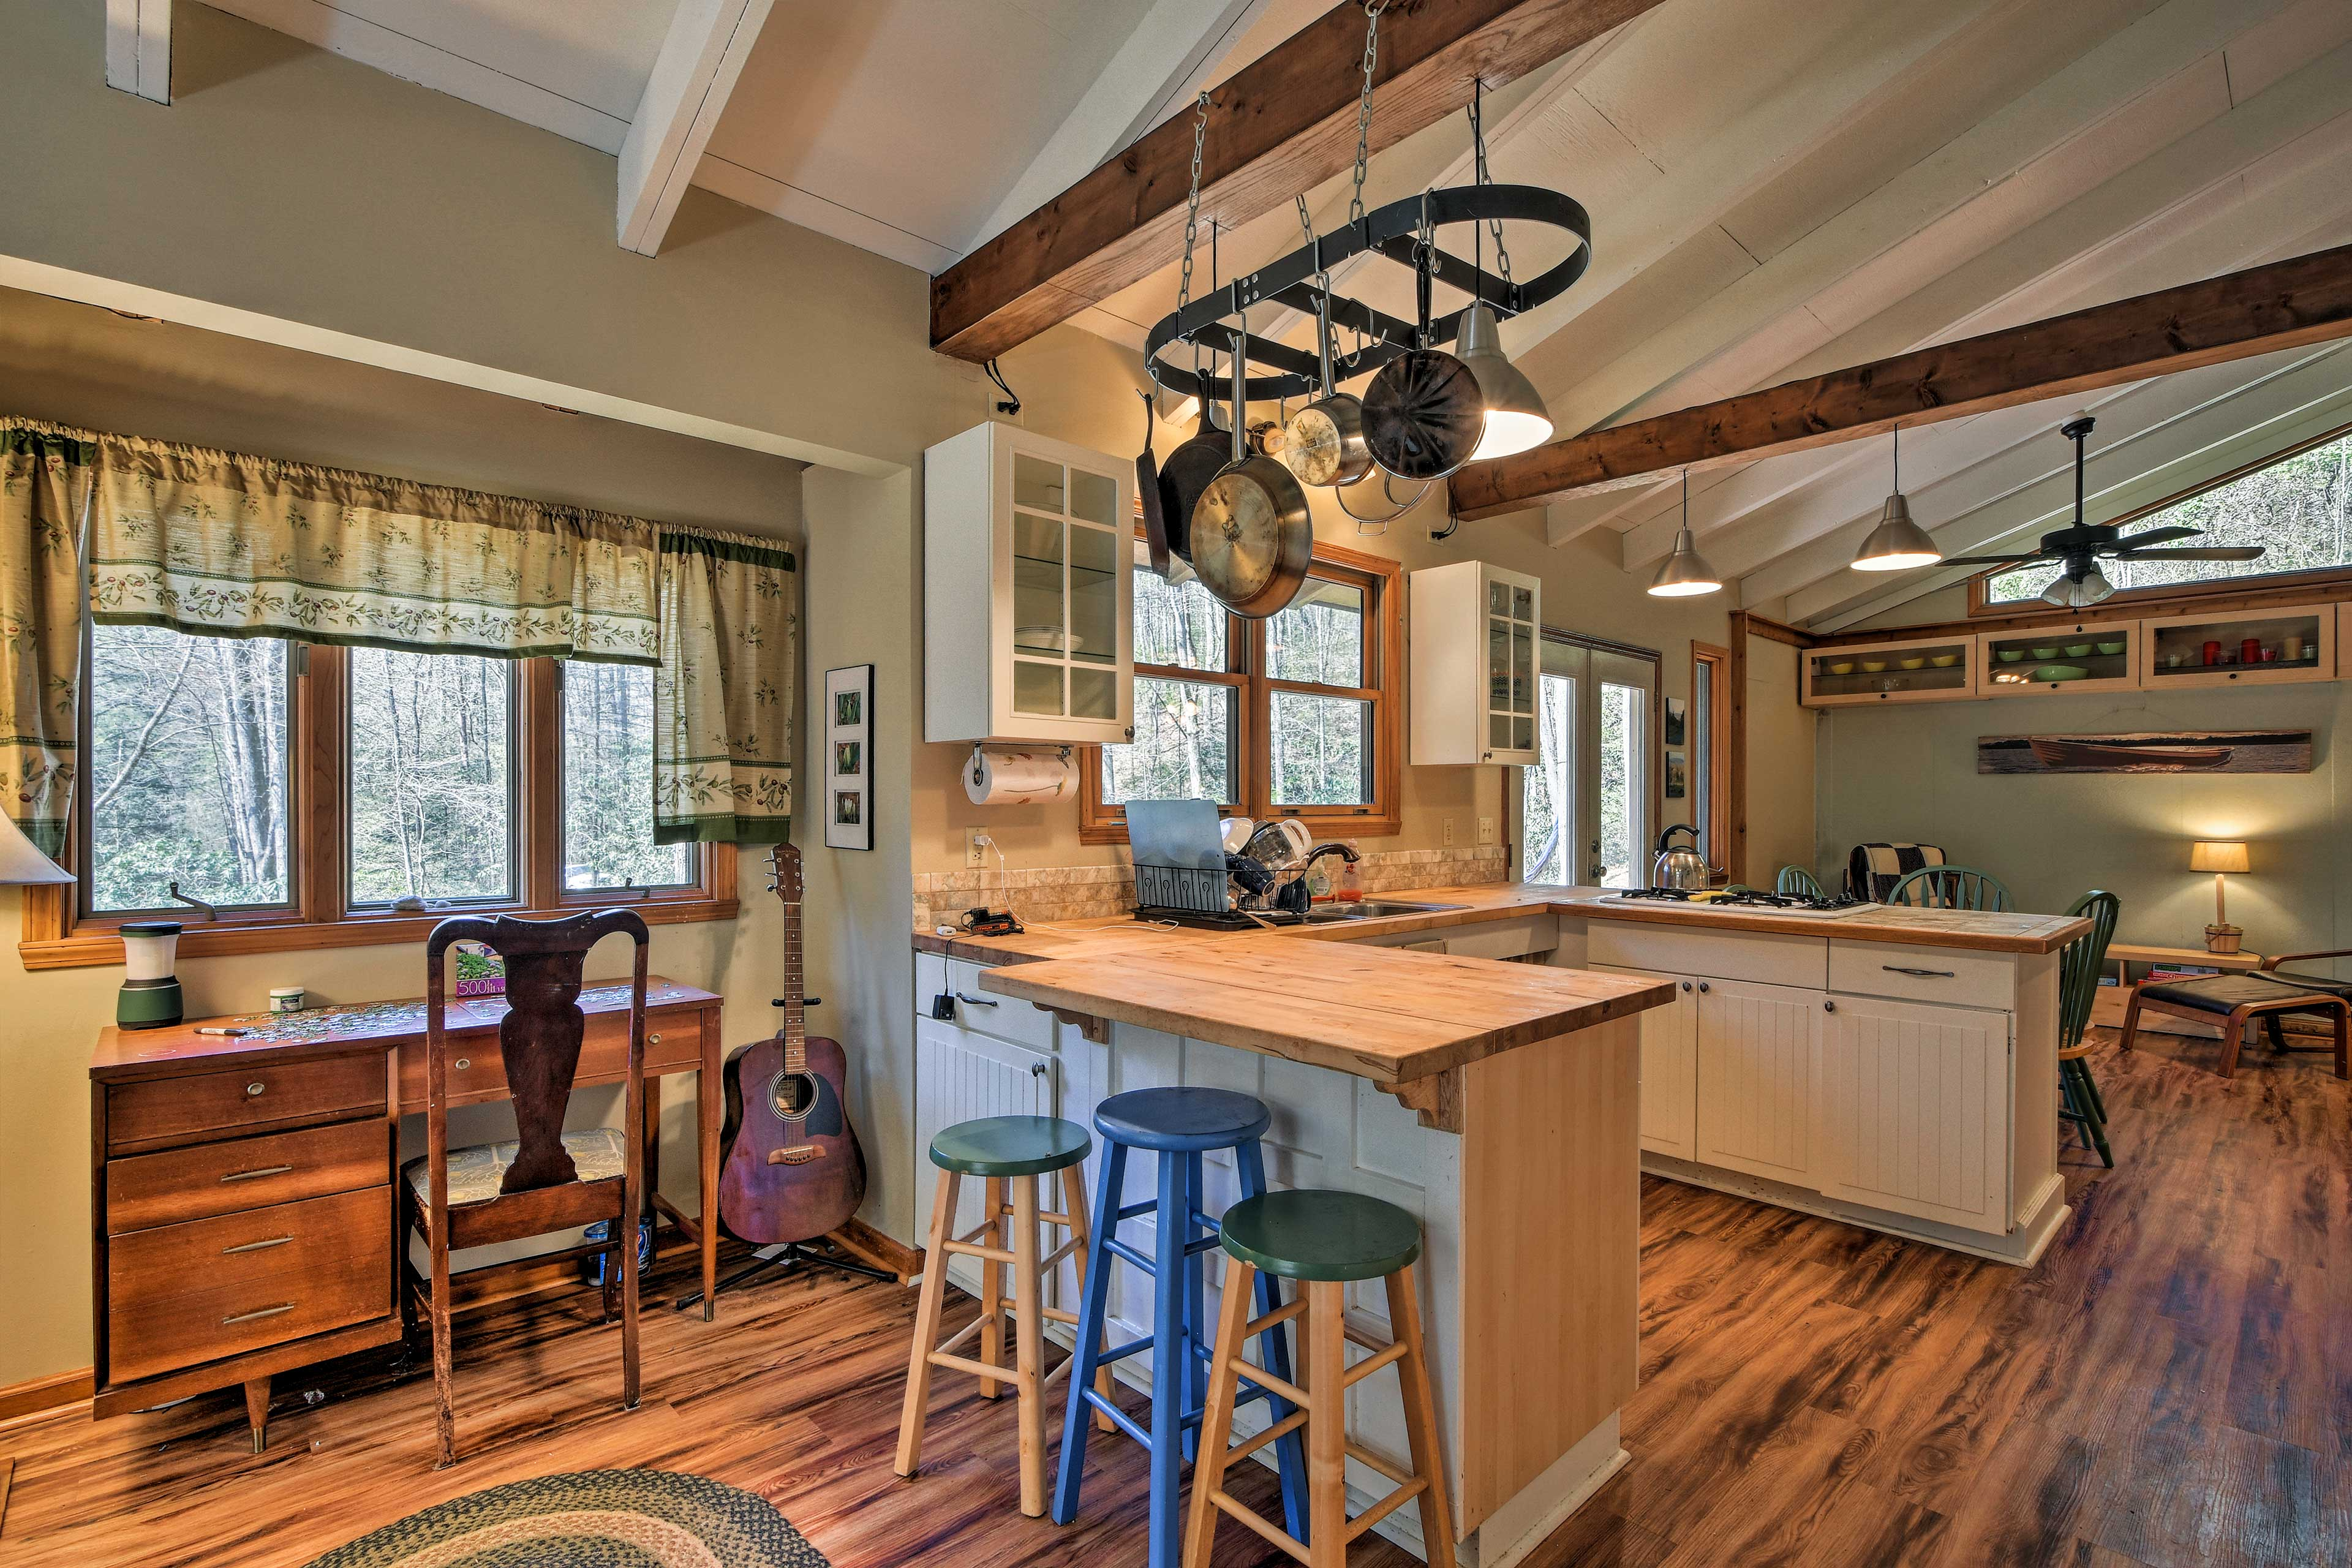 The home features free WiFi, a desk, acoustic guitar, & high-top breakfast bar.